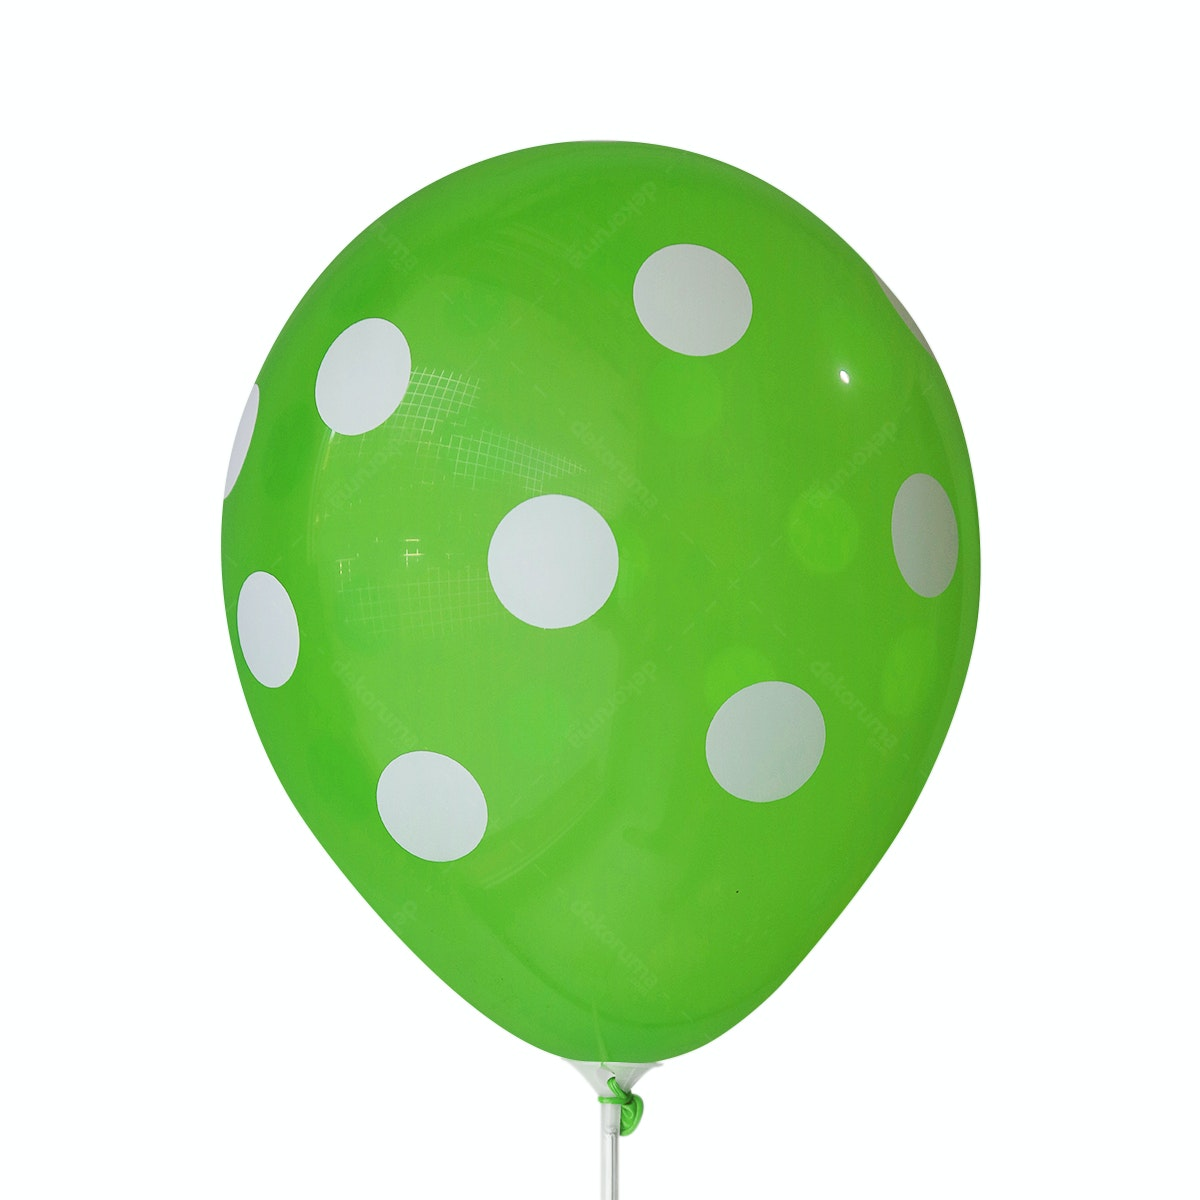 Adalima Balloon Balloon Polkadot Light Green B QQ